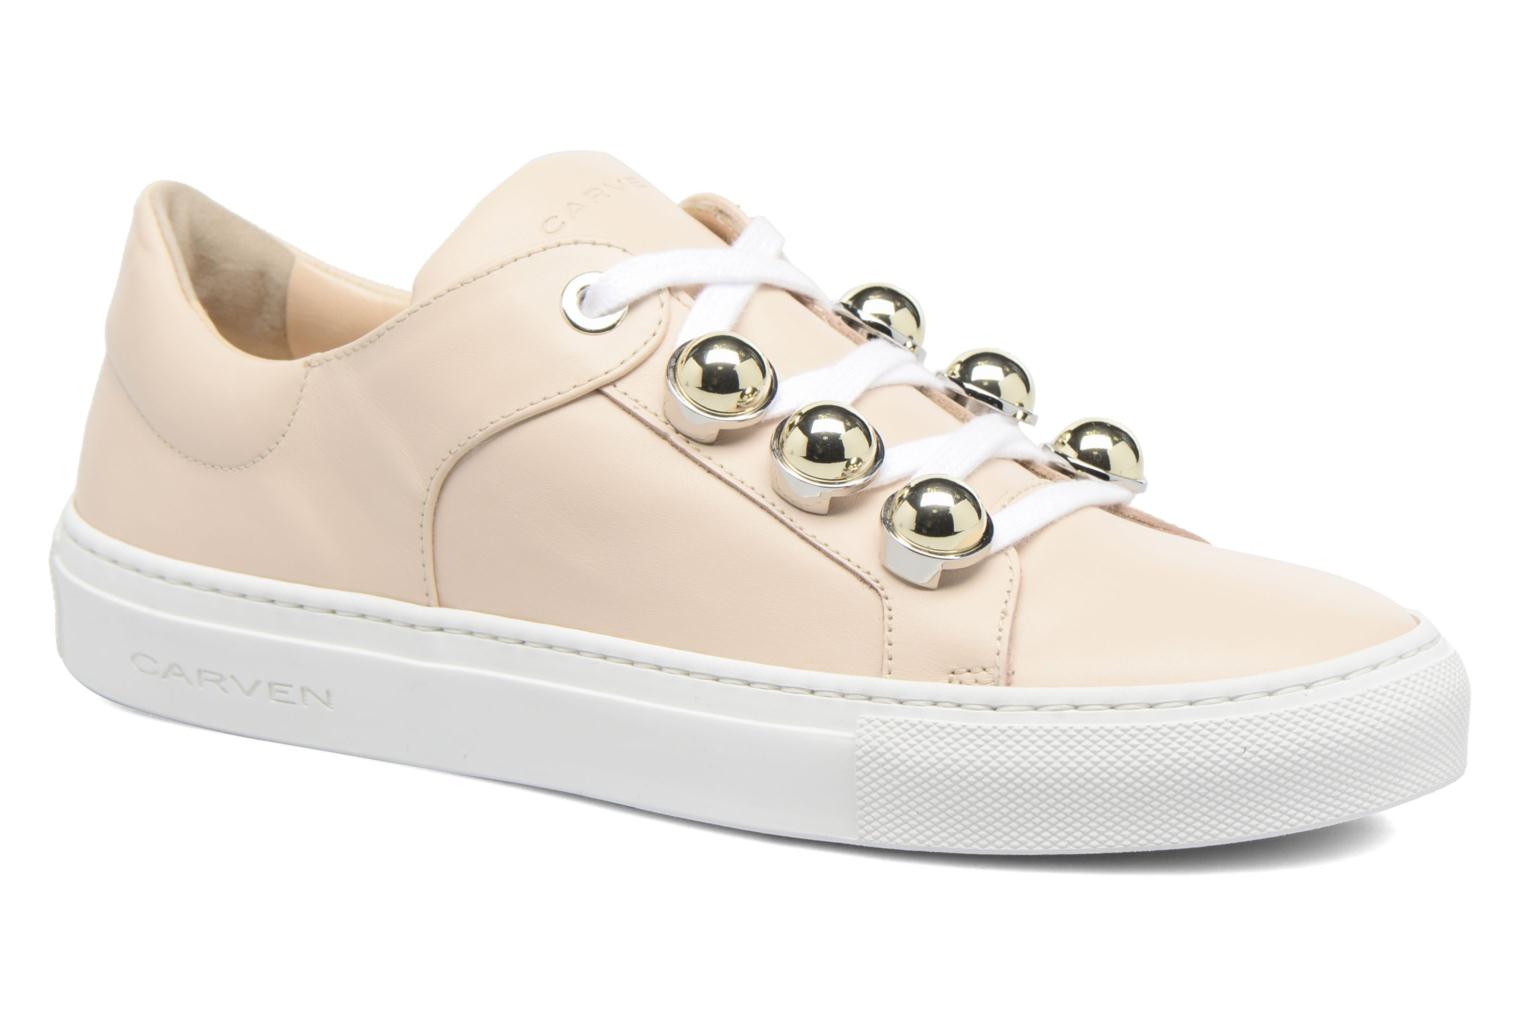 Baskets Carven Resonance Beige vue détail/paire